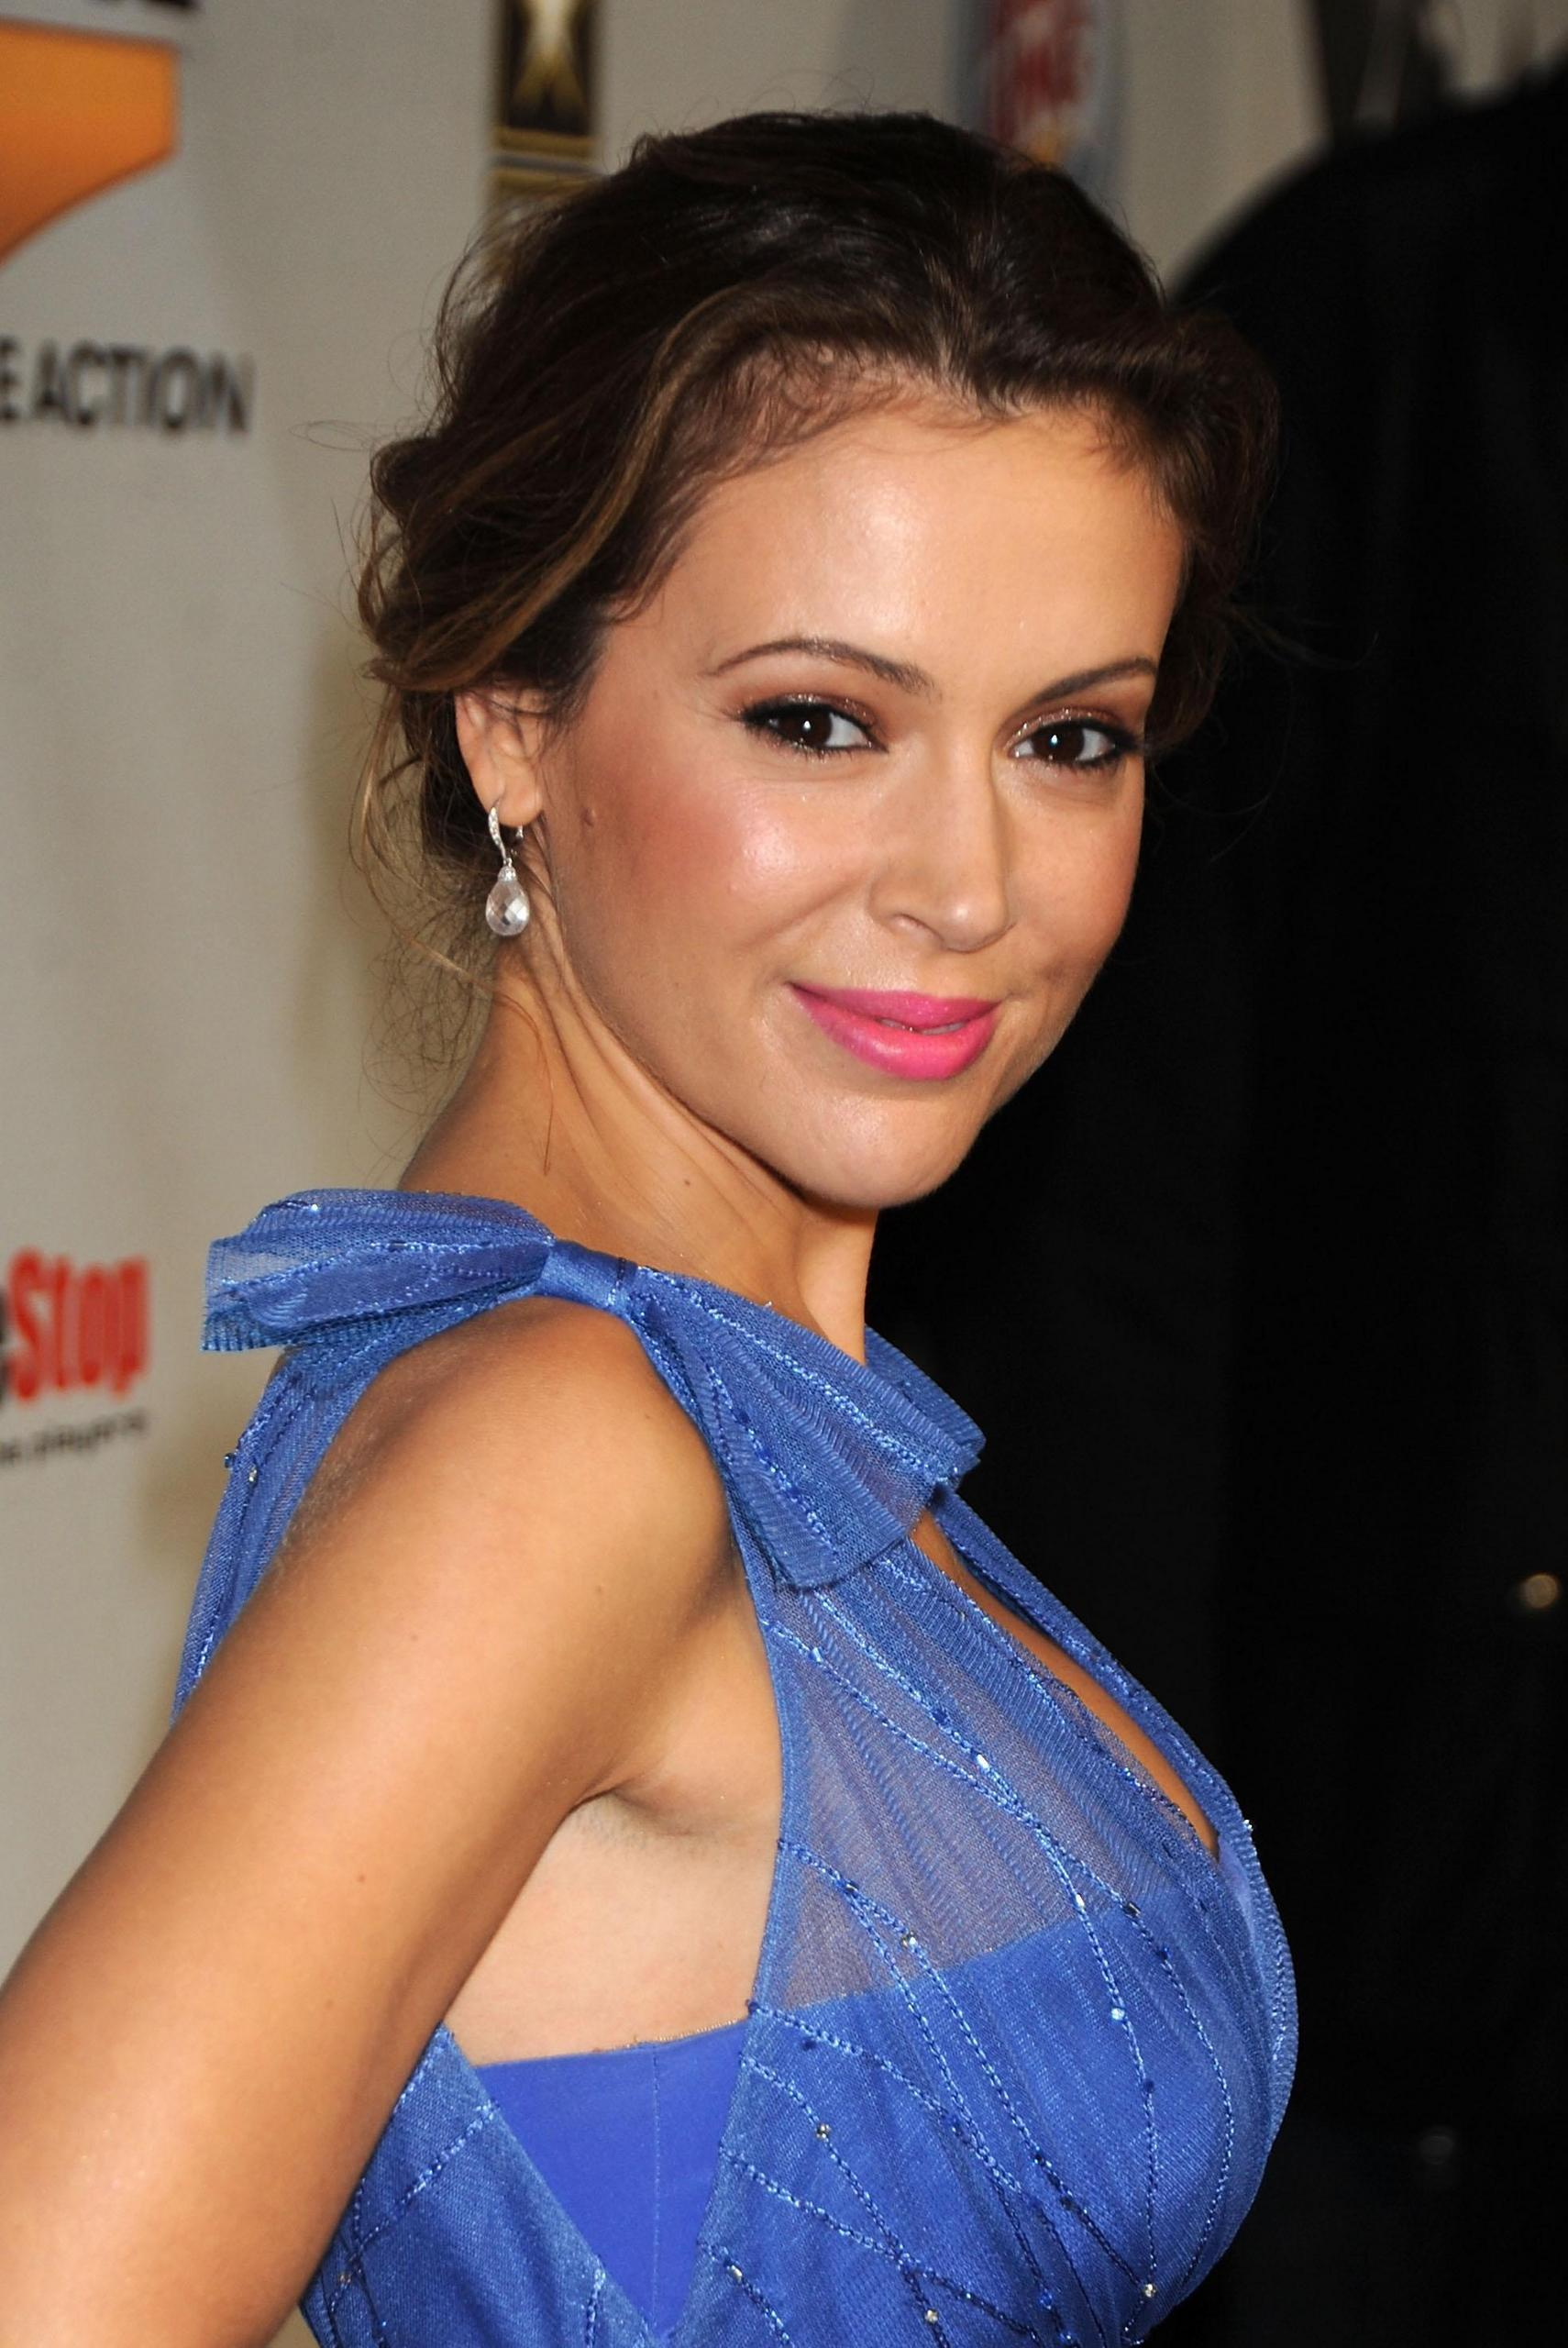 33 Hot Pictures Of Alyssa Milano - Samantha Micelli in Who's the Boss?